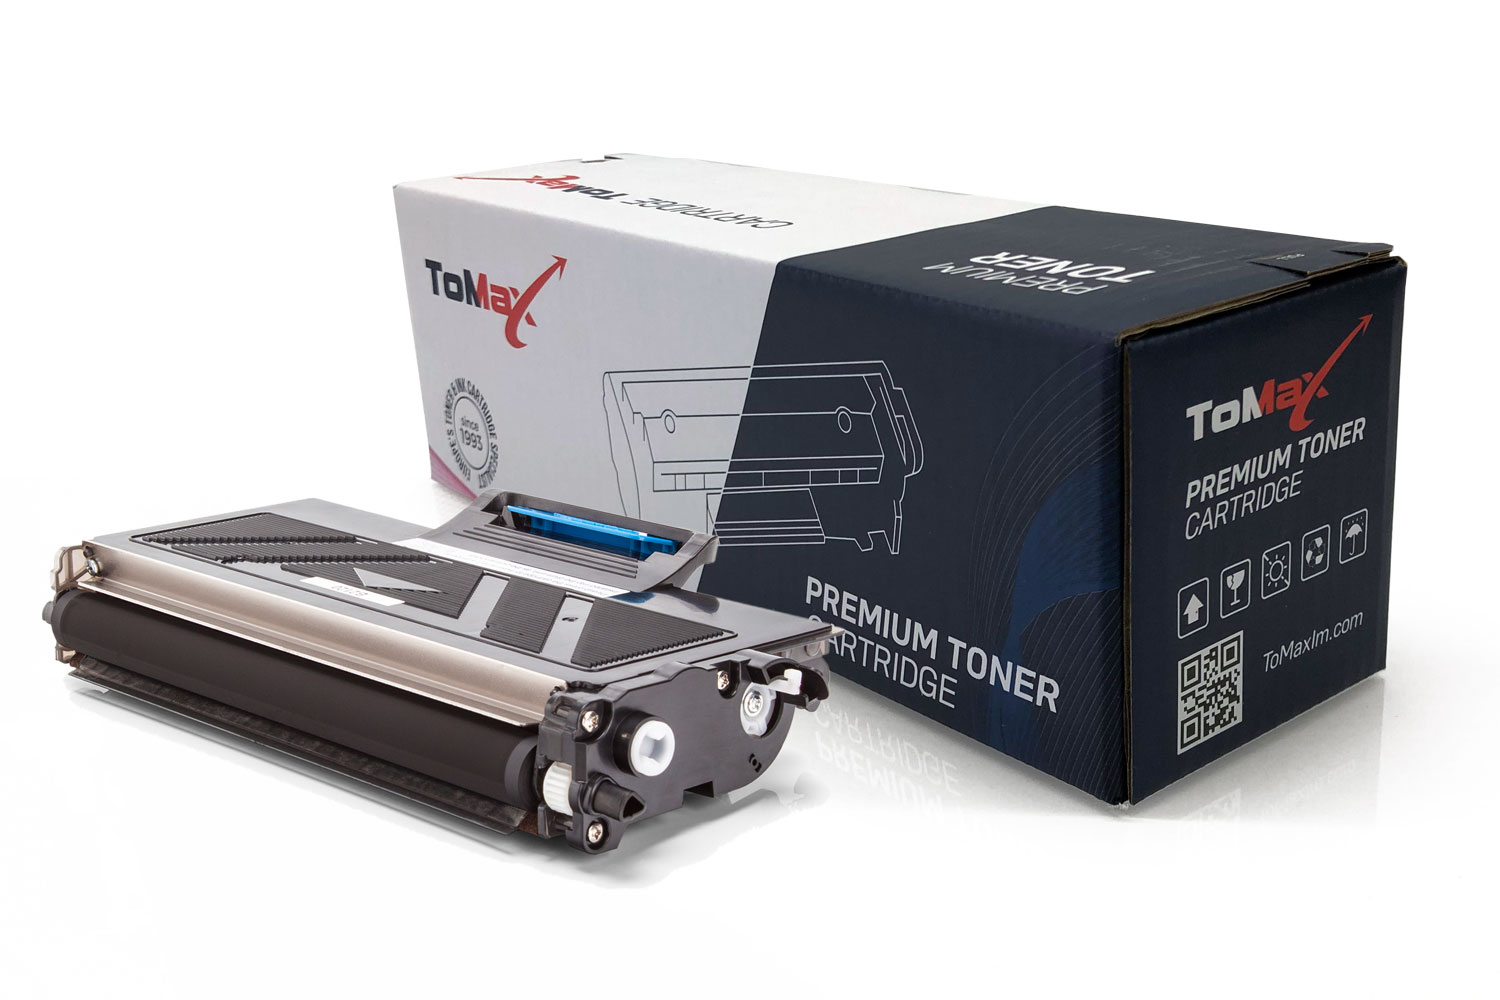 ToMax Premium Toner Cartridge replaces Brother TN-2000 Black